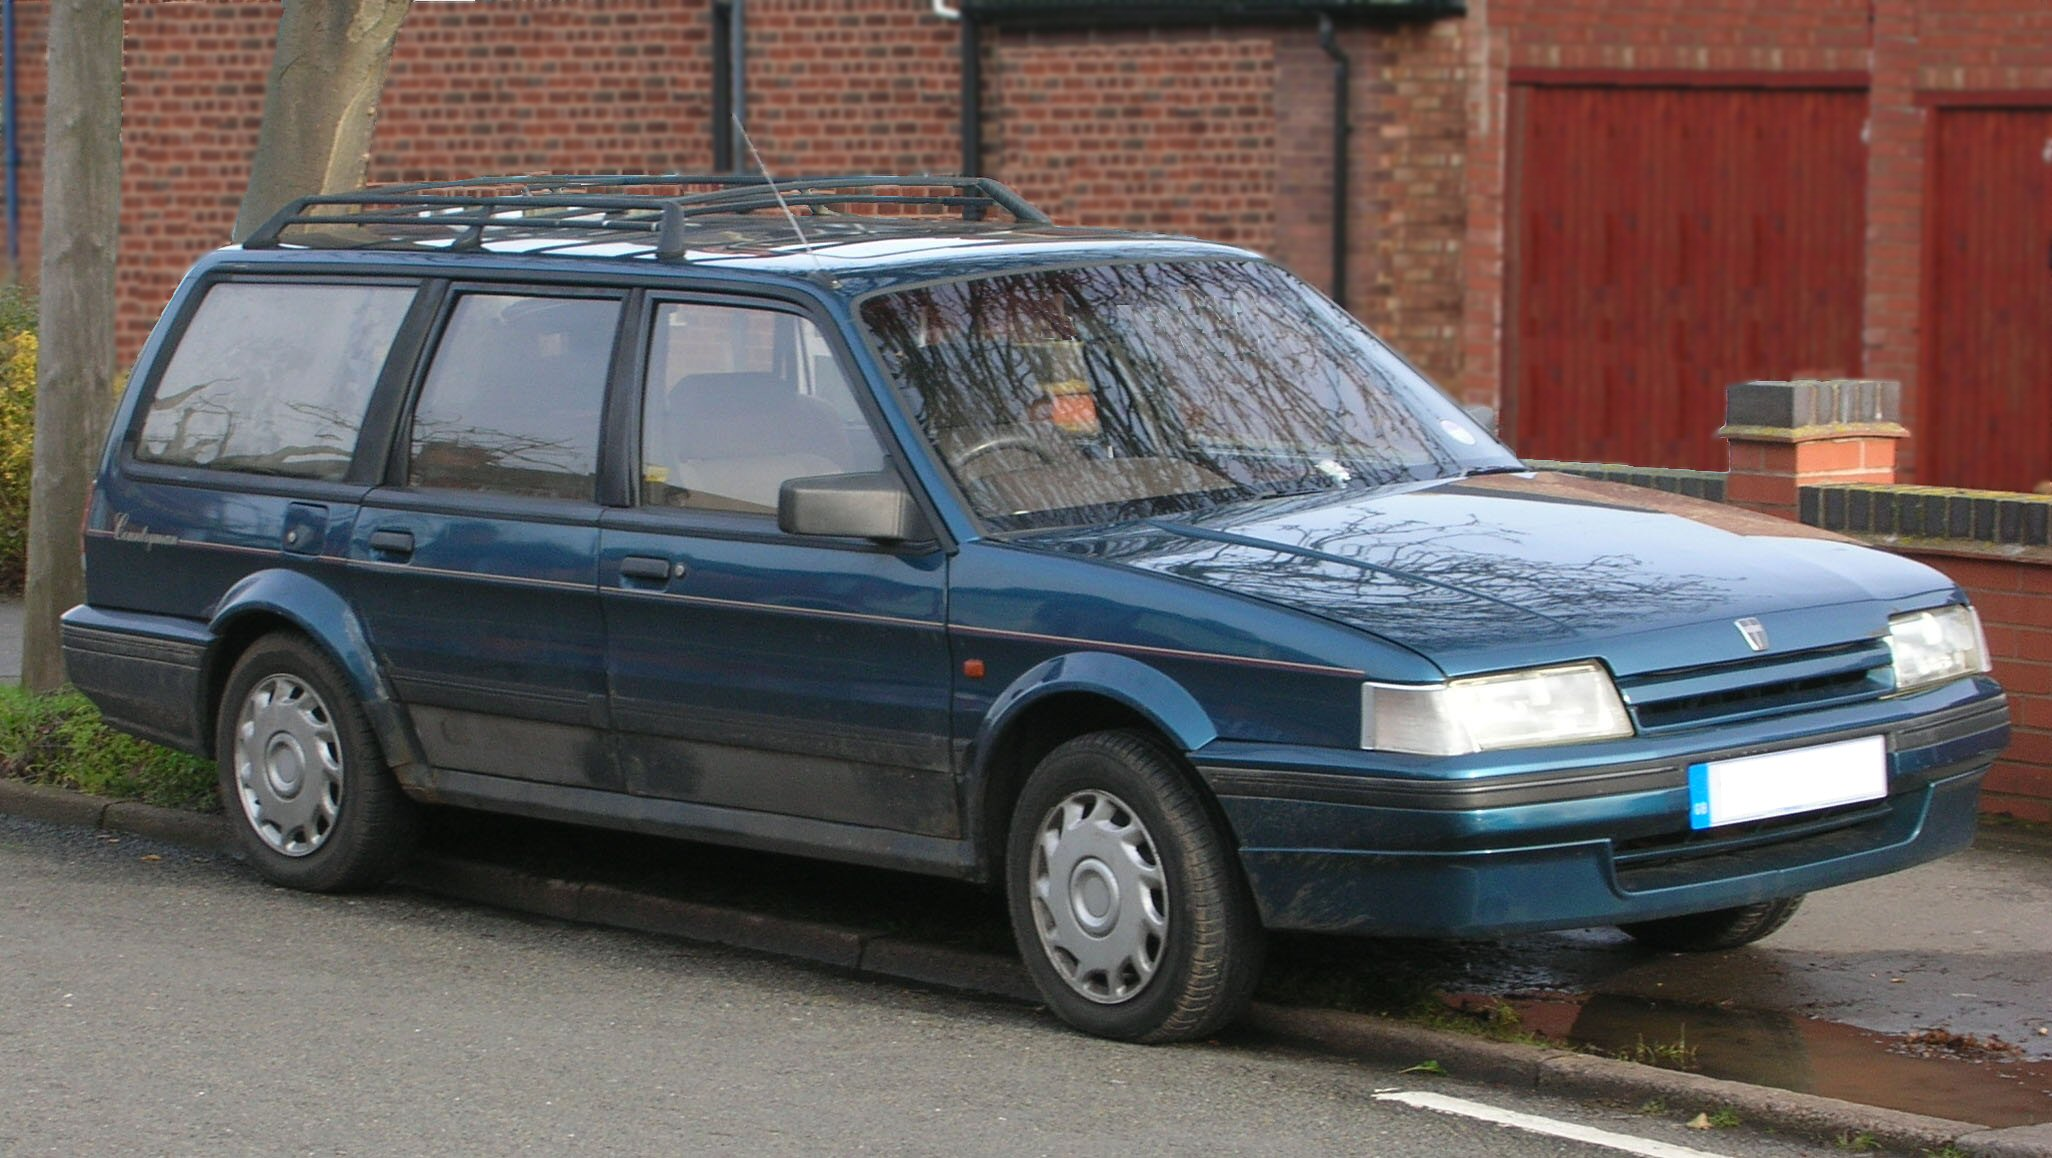 File:Rover Montego Estate Countryman 2.0i 1993.jpg - Wikimedia Commons